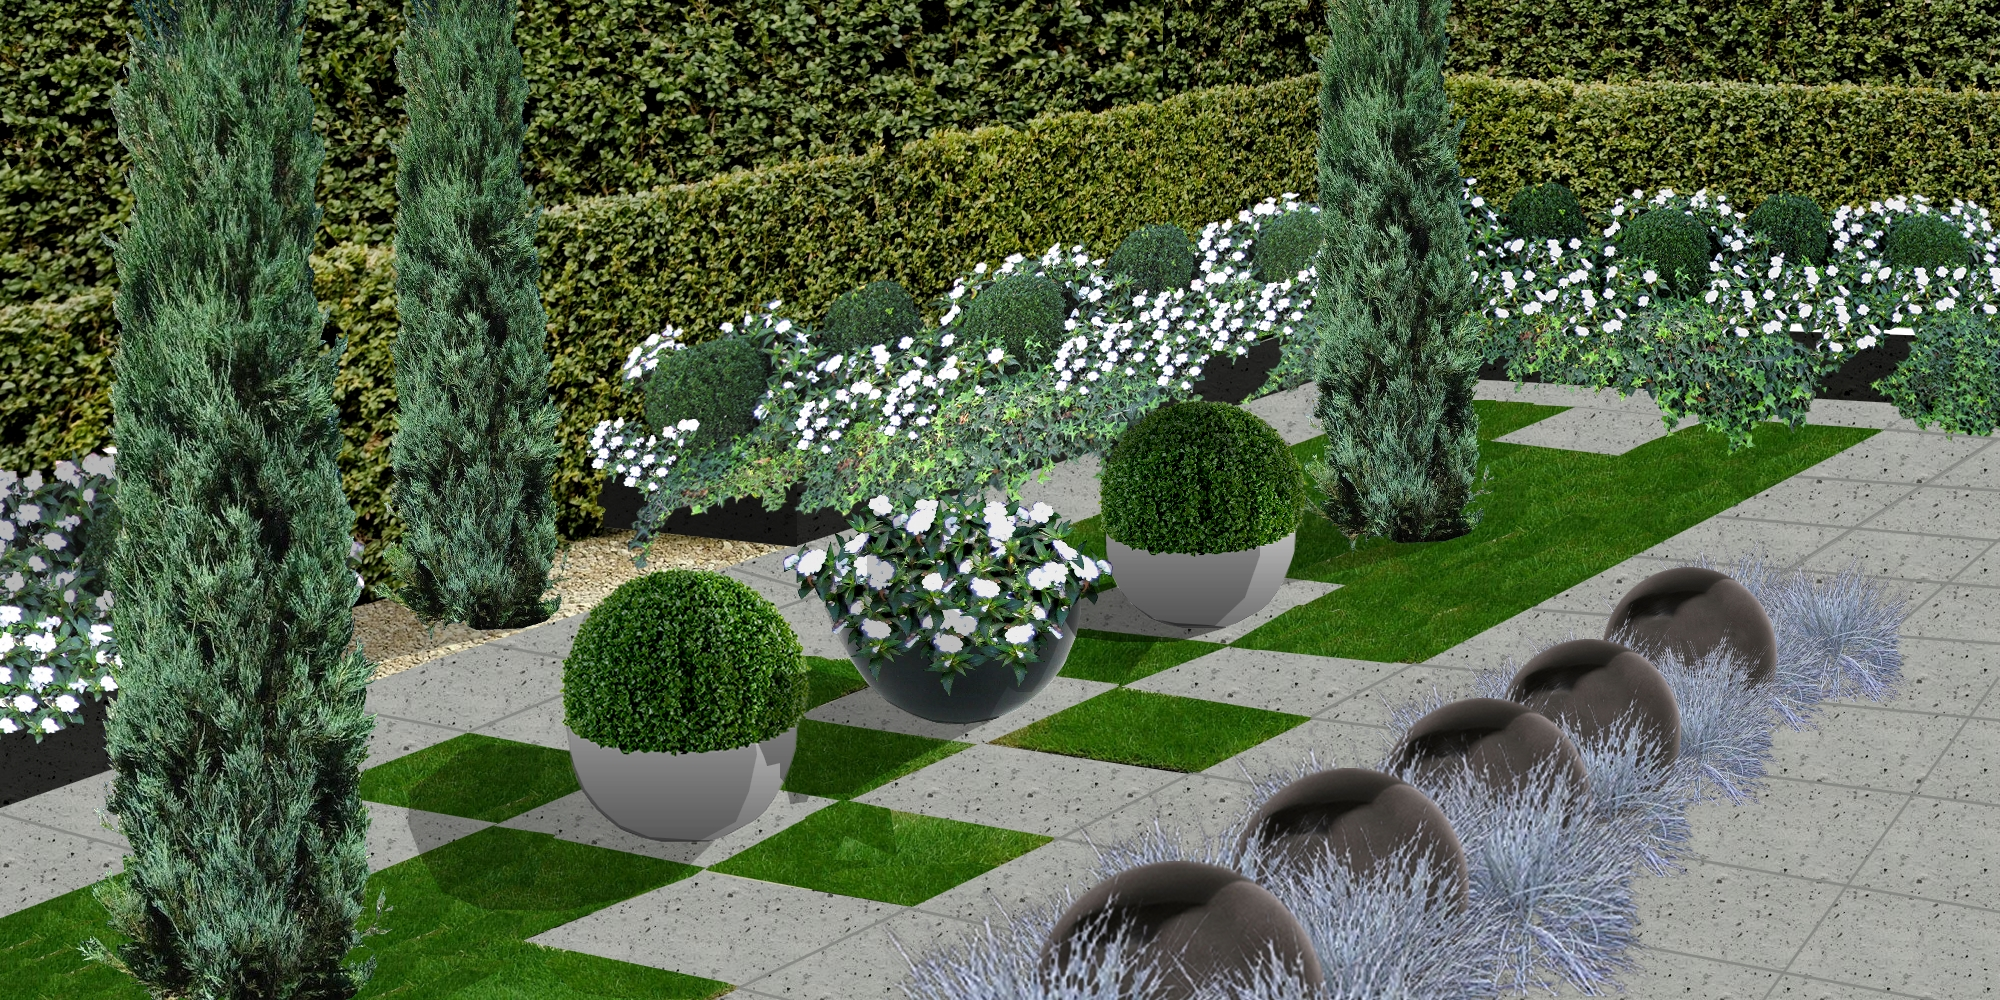 Cr er un jardin de topiaires un jardin de buis for Creer un jardin contemporain